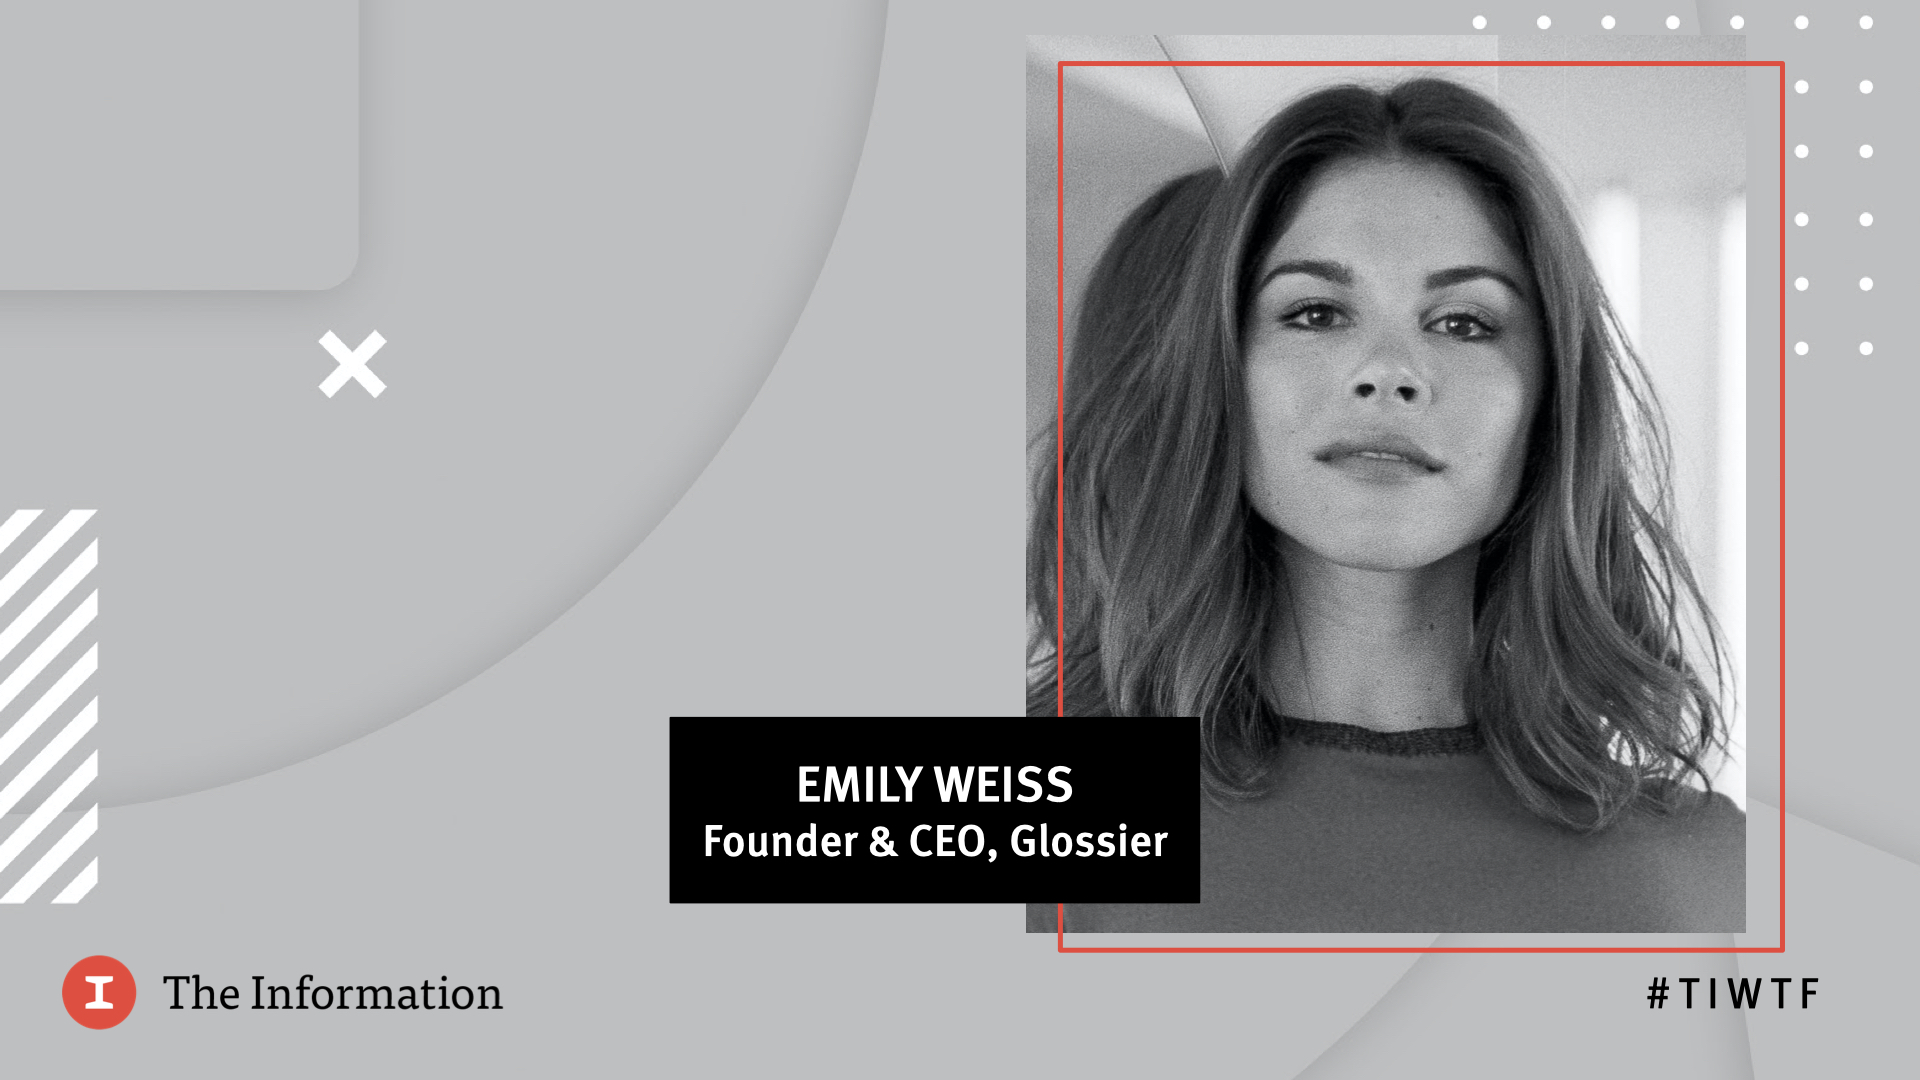 WTF 2020 - Glossier's Founder & CEO Emily Weiss in conversation with Jessica Lessin, Founder & CEO of The Information